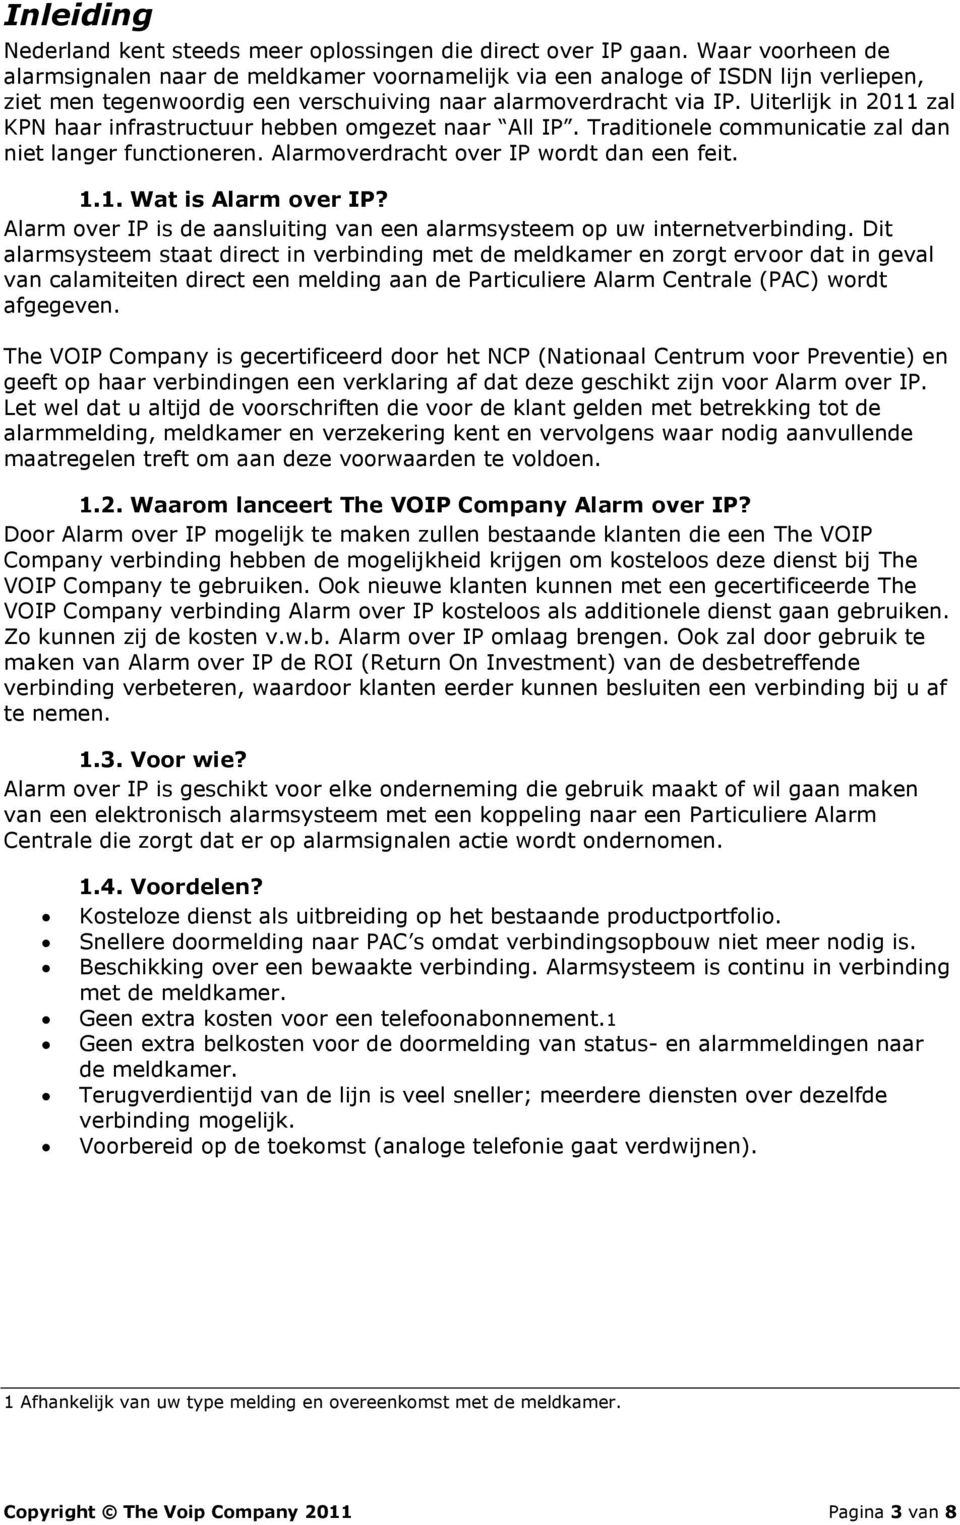 Uiterlijk in 2011 zal KPN haar infrastructuur hebben omgezet naar All IP. Traditionele communicatie zal dan niet langer functioneren. Alarmoverdracht over IP wordt dan een feit. 1.1. Wat is Alarm over IP?